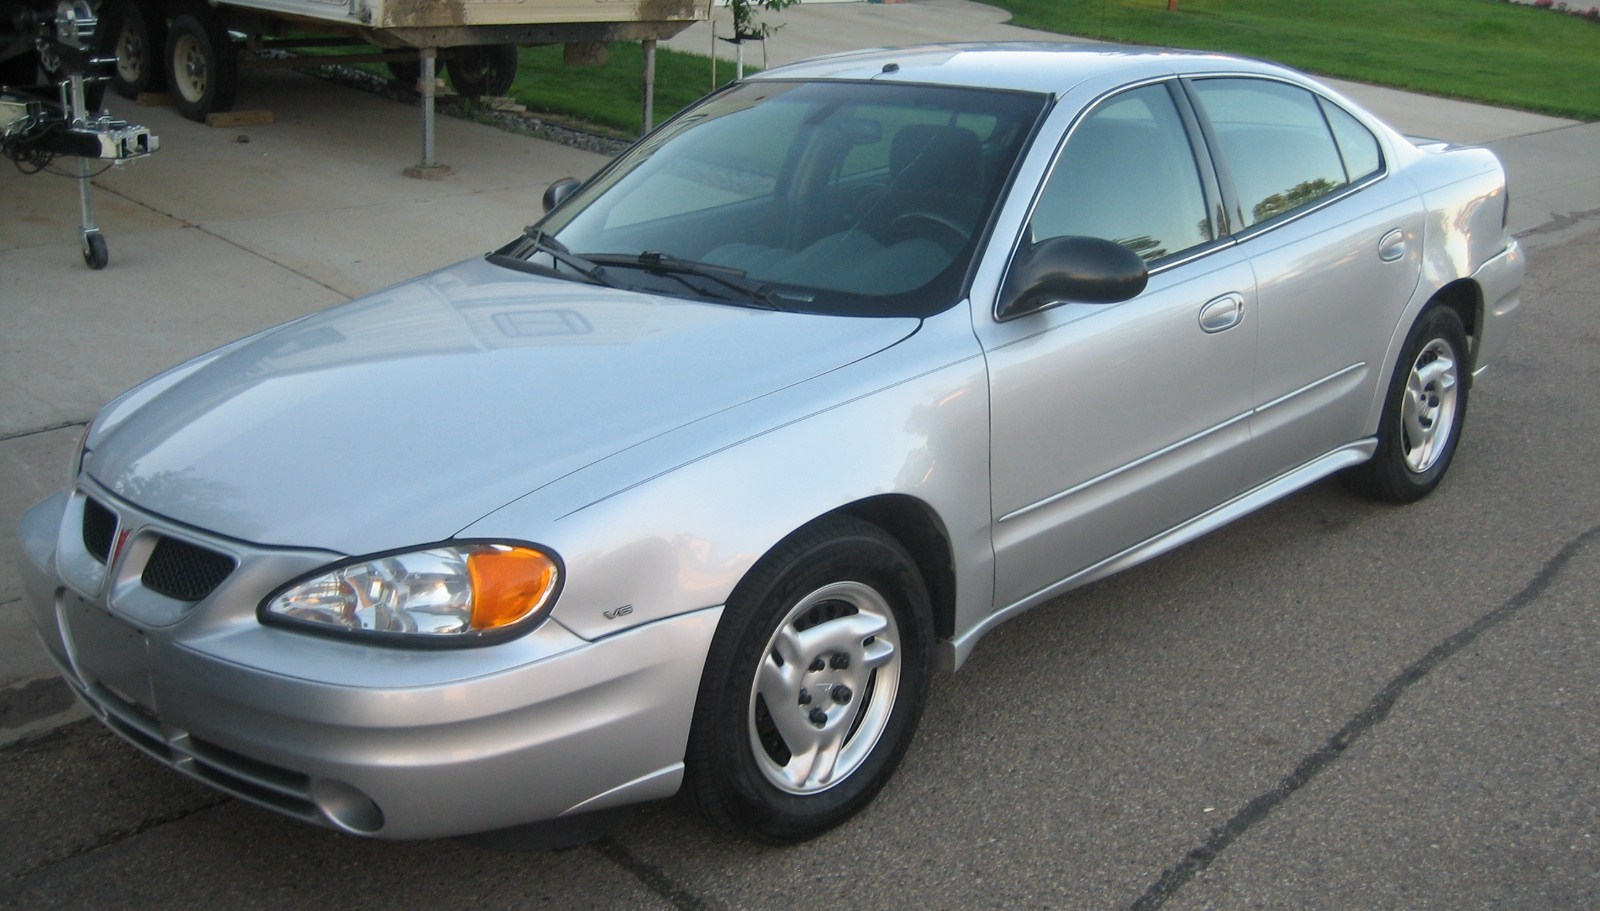 2005 Pontiac Grand Am SE picture, exterior